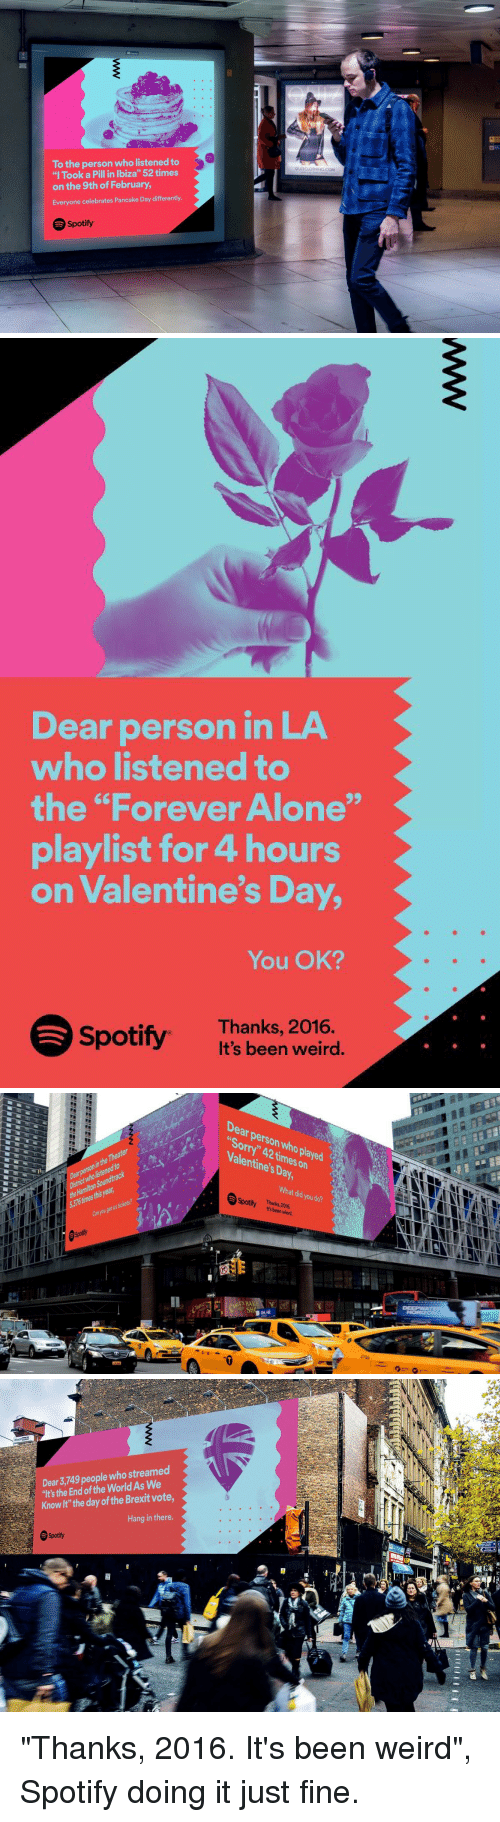 "pancake day: To the person who listened to  ""I Took a Pill in Ibiza"" 52 times  on the 9th of February,  Everyone celebrates Pancake Day differently.  Spotify  QUIZCLOTHING COM   Dear person in LA  who listened to  the ""Forever Alone""  playlist for 4 hours  on Valentine's Day,  You OK?  Spotify. Thanks, 2016  It's been weird.   edto  Kon  Dear times Valentine's on  Day,  What you did do?  otty It's been  wierd.   Dear 3,749 people streamed  who 's the End of the WorldAs We  Knowlt"" the day of the Brexit vote  Hang in there  Spotify  A ""Thanks, 2016. It's been weird"", Spotify doing it just fine."